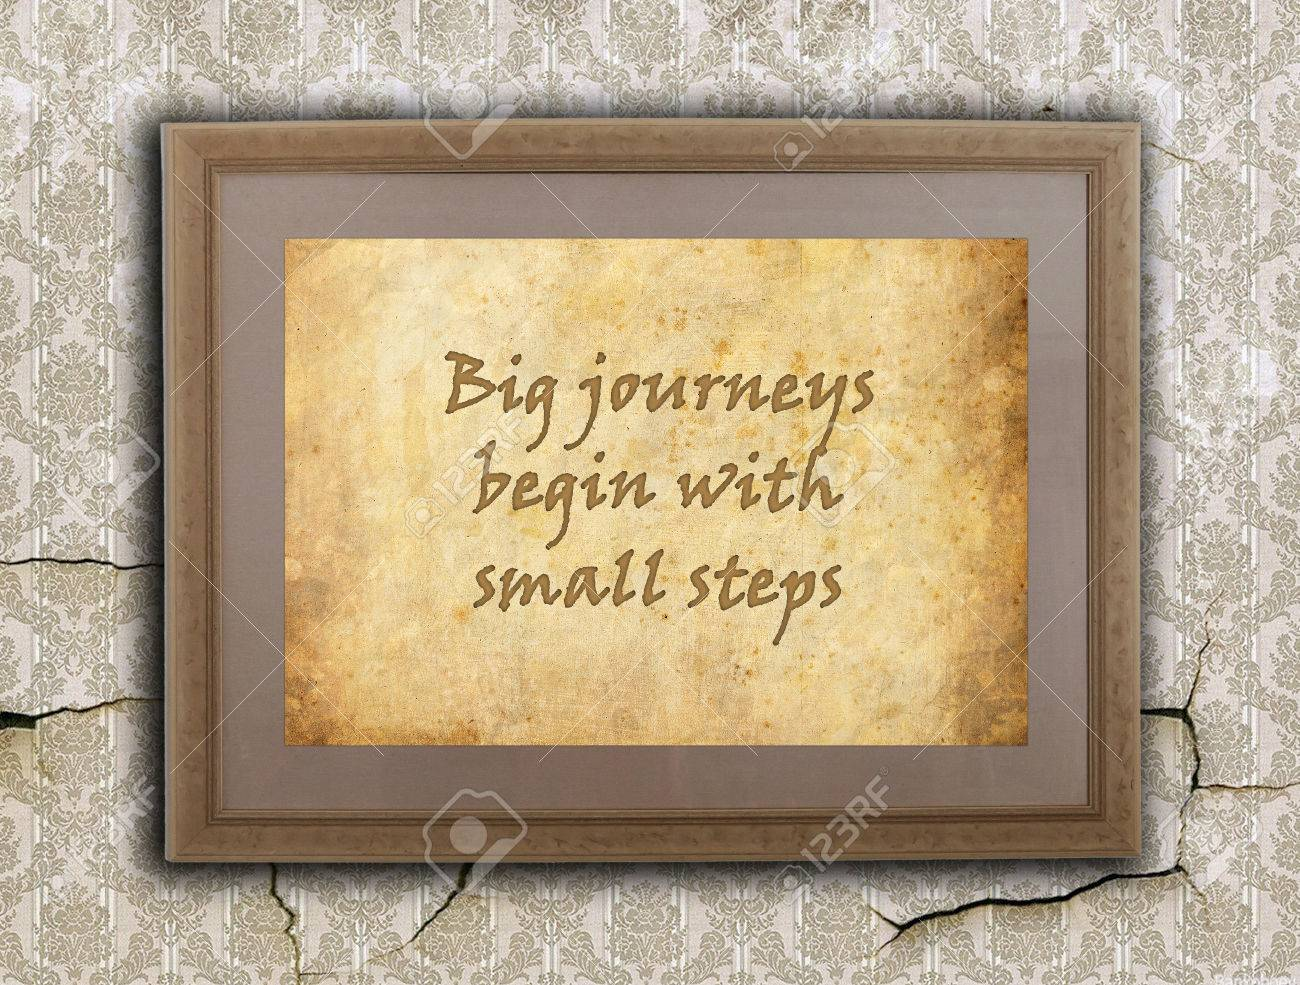 Old wooden frame with written text on an old wall - Big journeys, small steps Stock Photo - 23480776